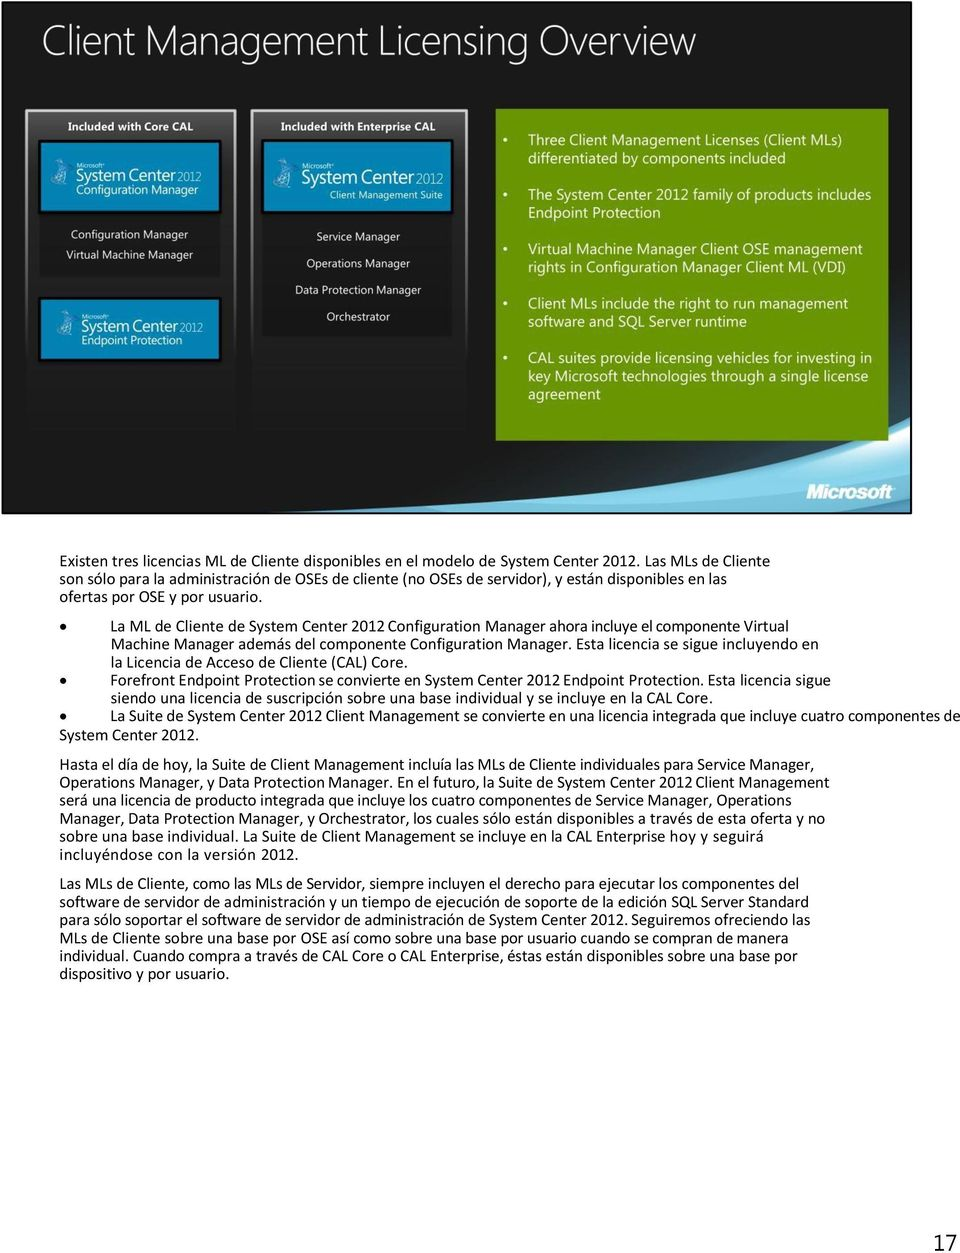 La ML de Cliente de System Center 2012 Configuration Manager ahora incluye el componente Virtual Machine Manager además del componente Configuration Manager.